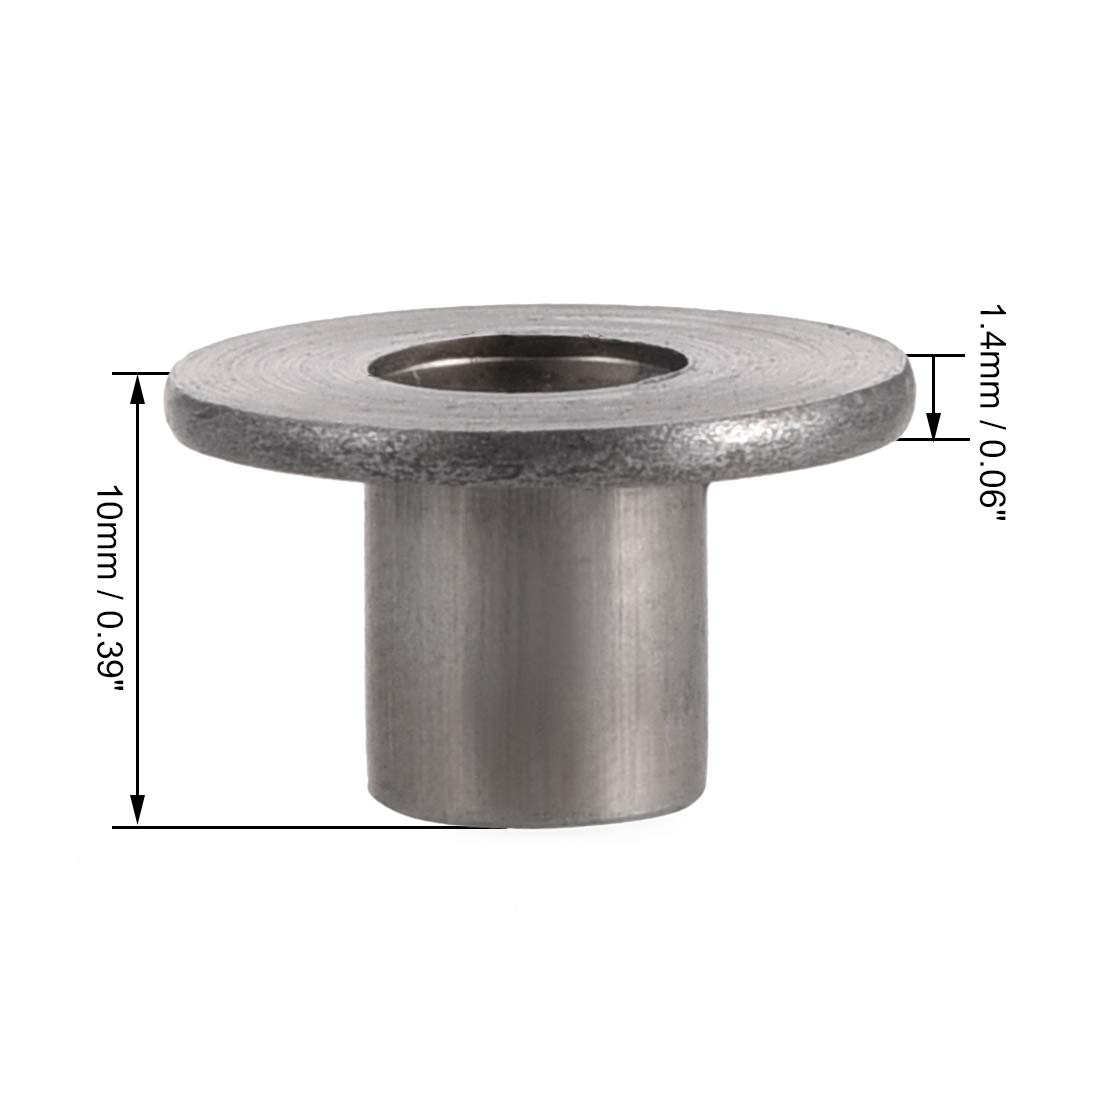 sourcing map 30Pcs M5x15x1.2mm Brad Hole Tee Nut Carbon Steel Round Base Screw-in T-Nut